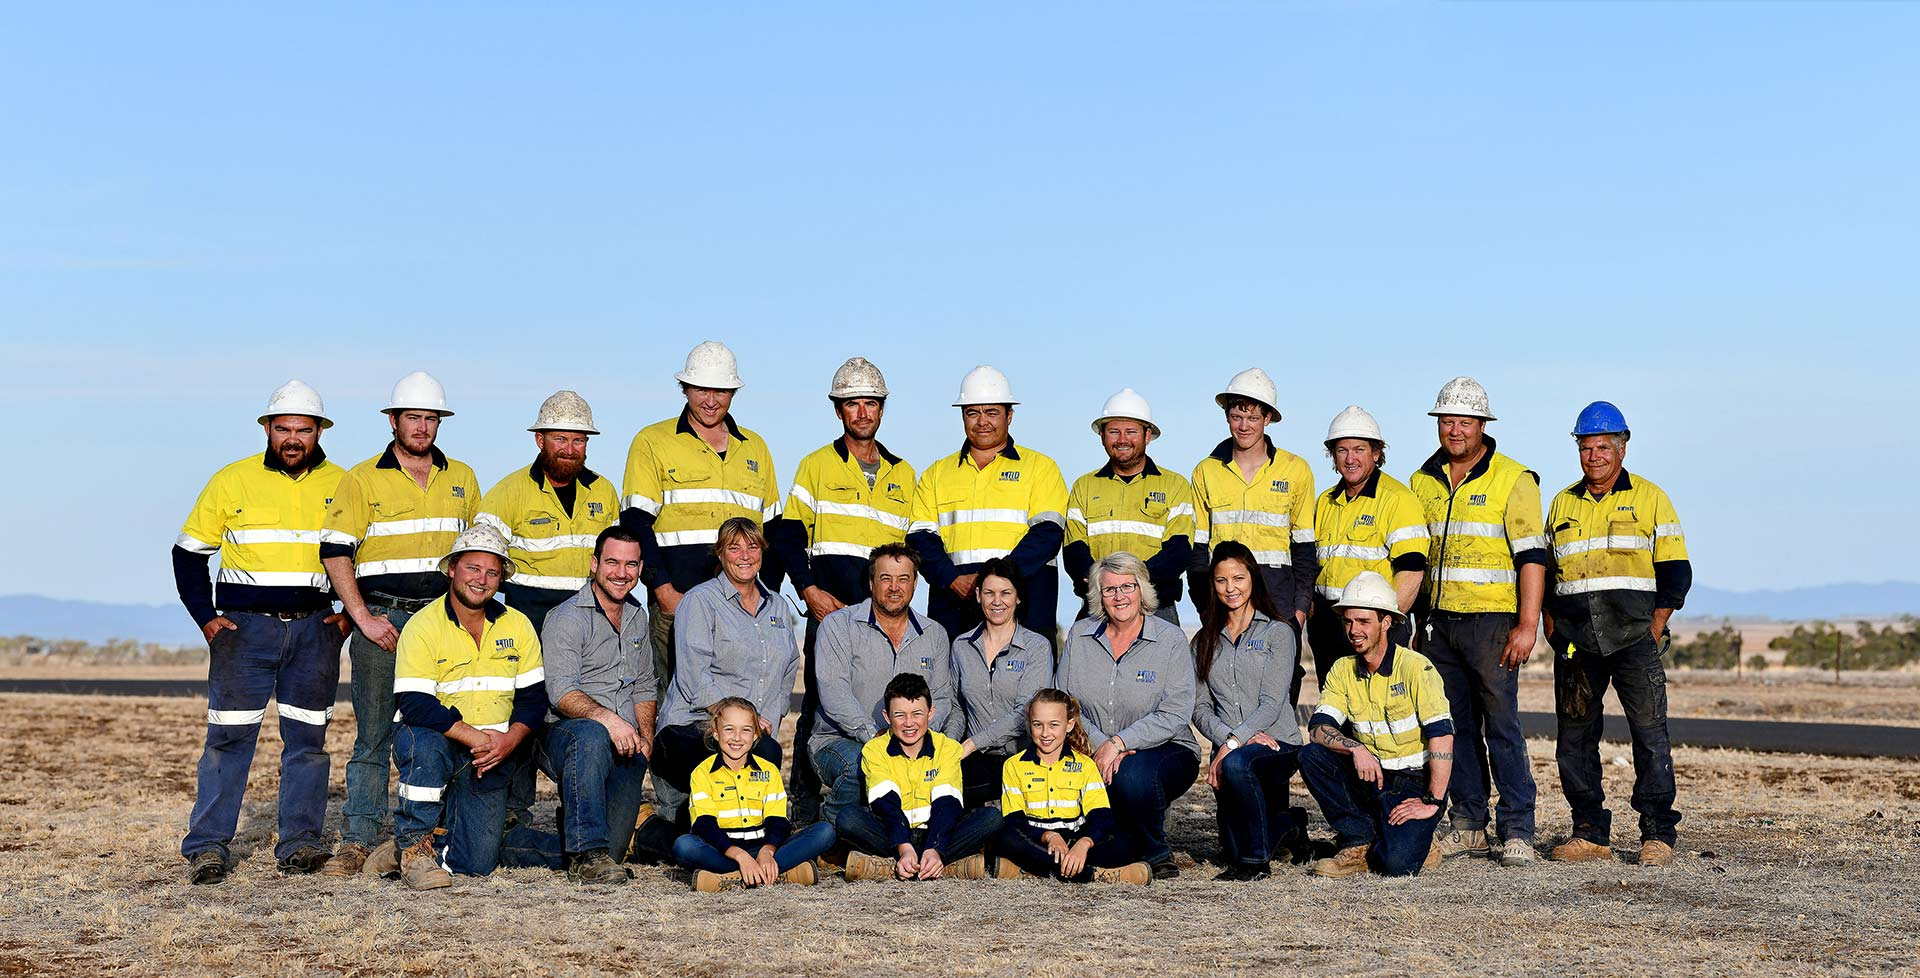 Employees of Mannion drilling wearing their yellow uniform